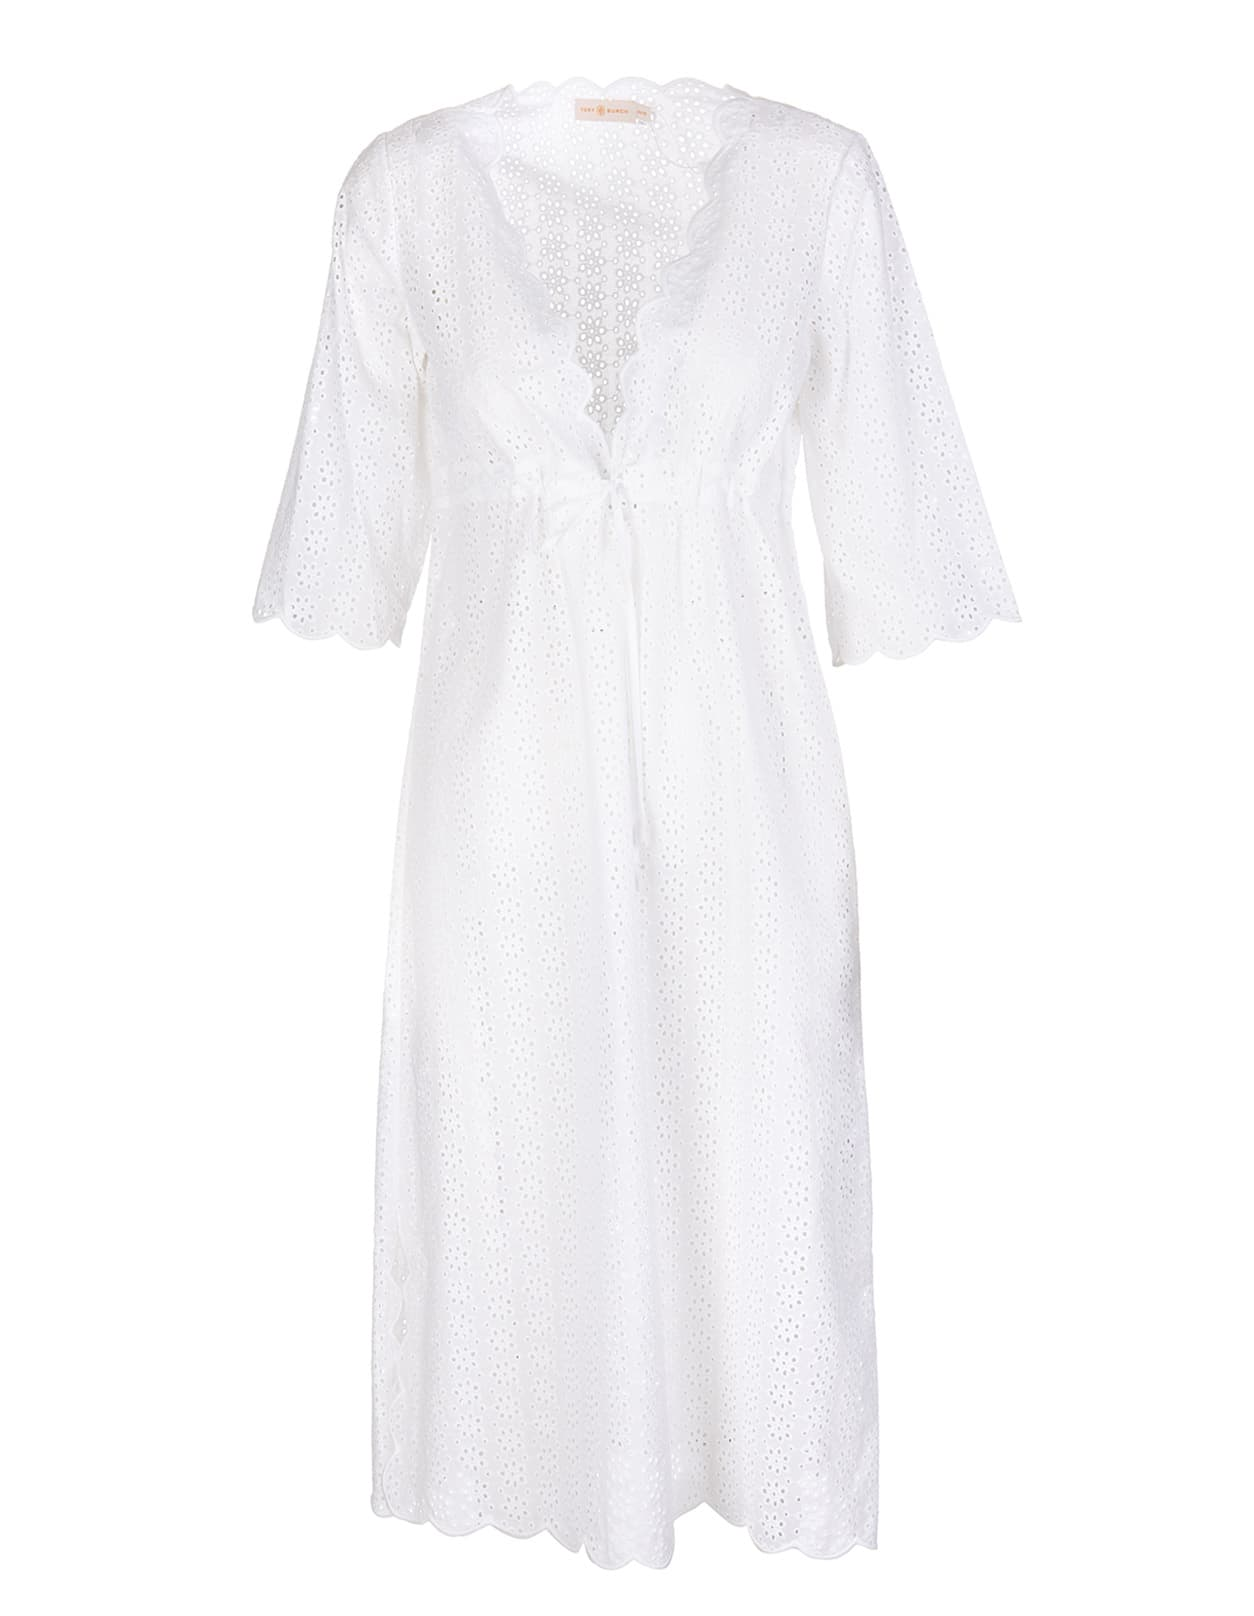 Tory Burch White Cotton Broderie Anglaise Dress Woman